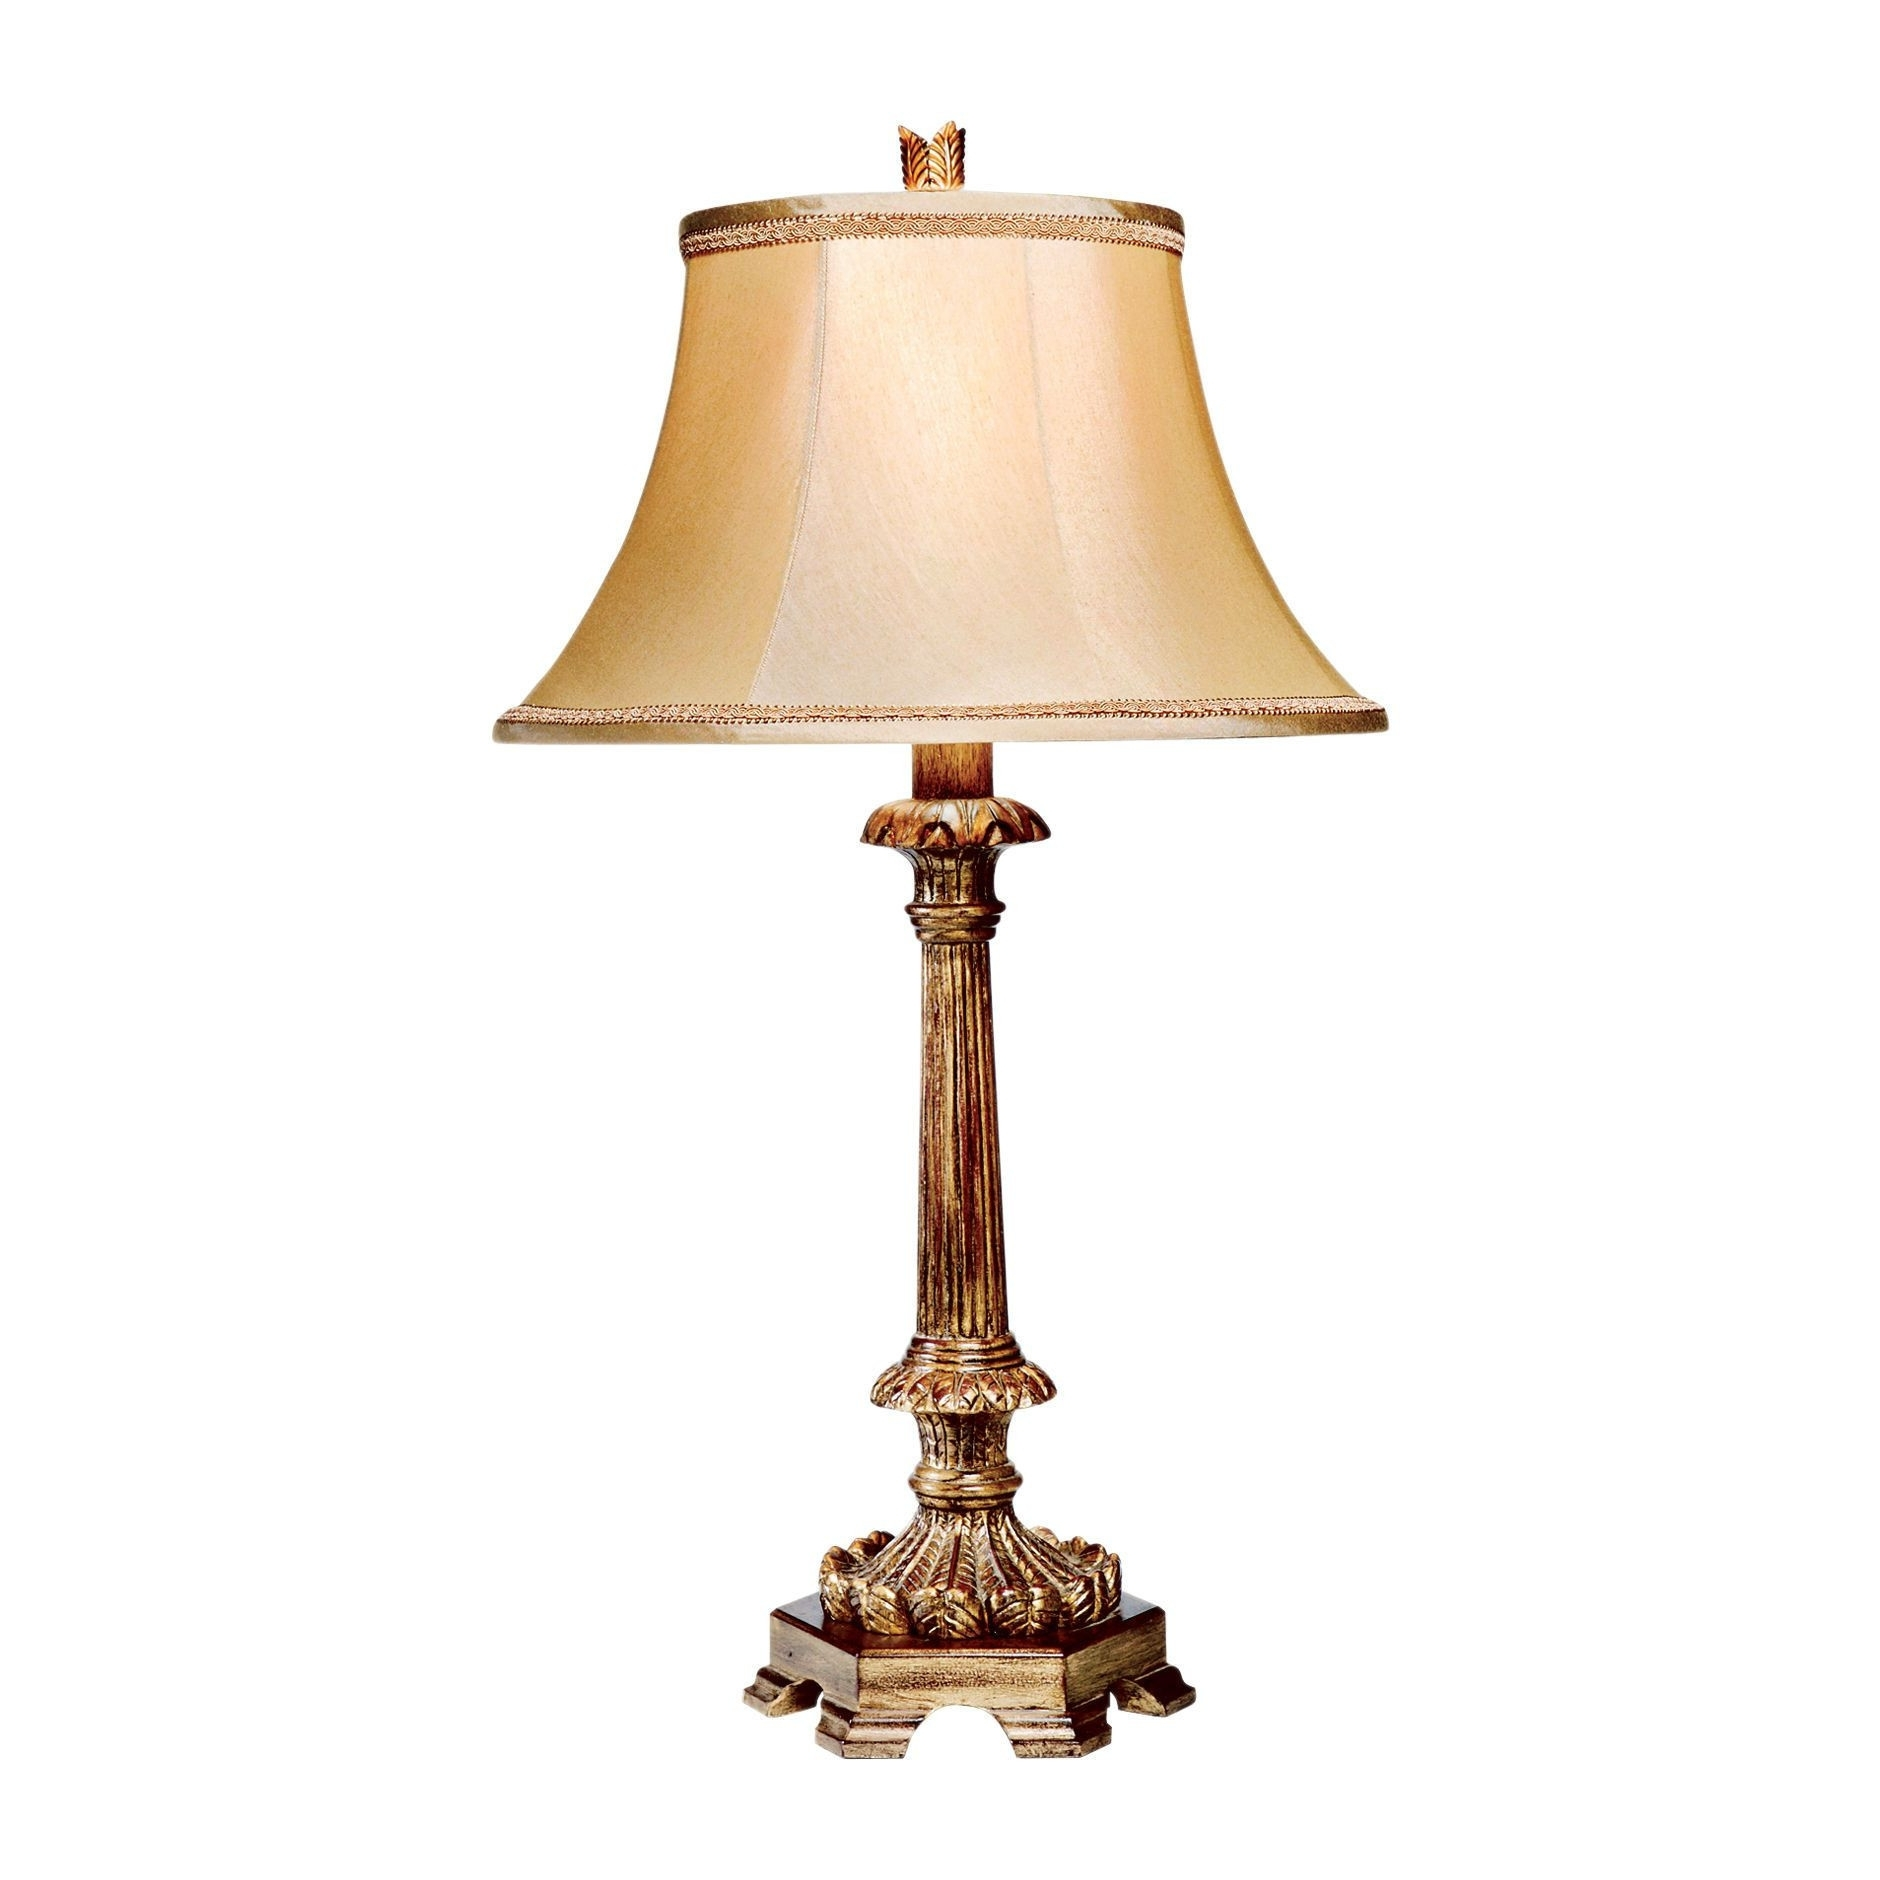 Most Recently Released Tuscan Table Lamps For Living Room Throughout Cordless Floor Lamps For Living Room Lovely 34 Awesome Tuscan Table (View 11 of 20)